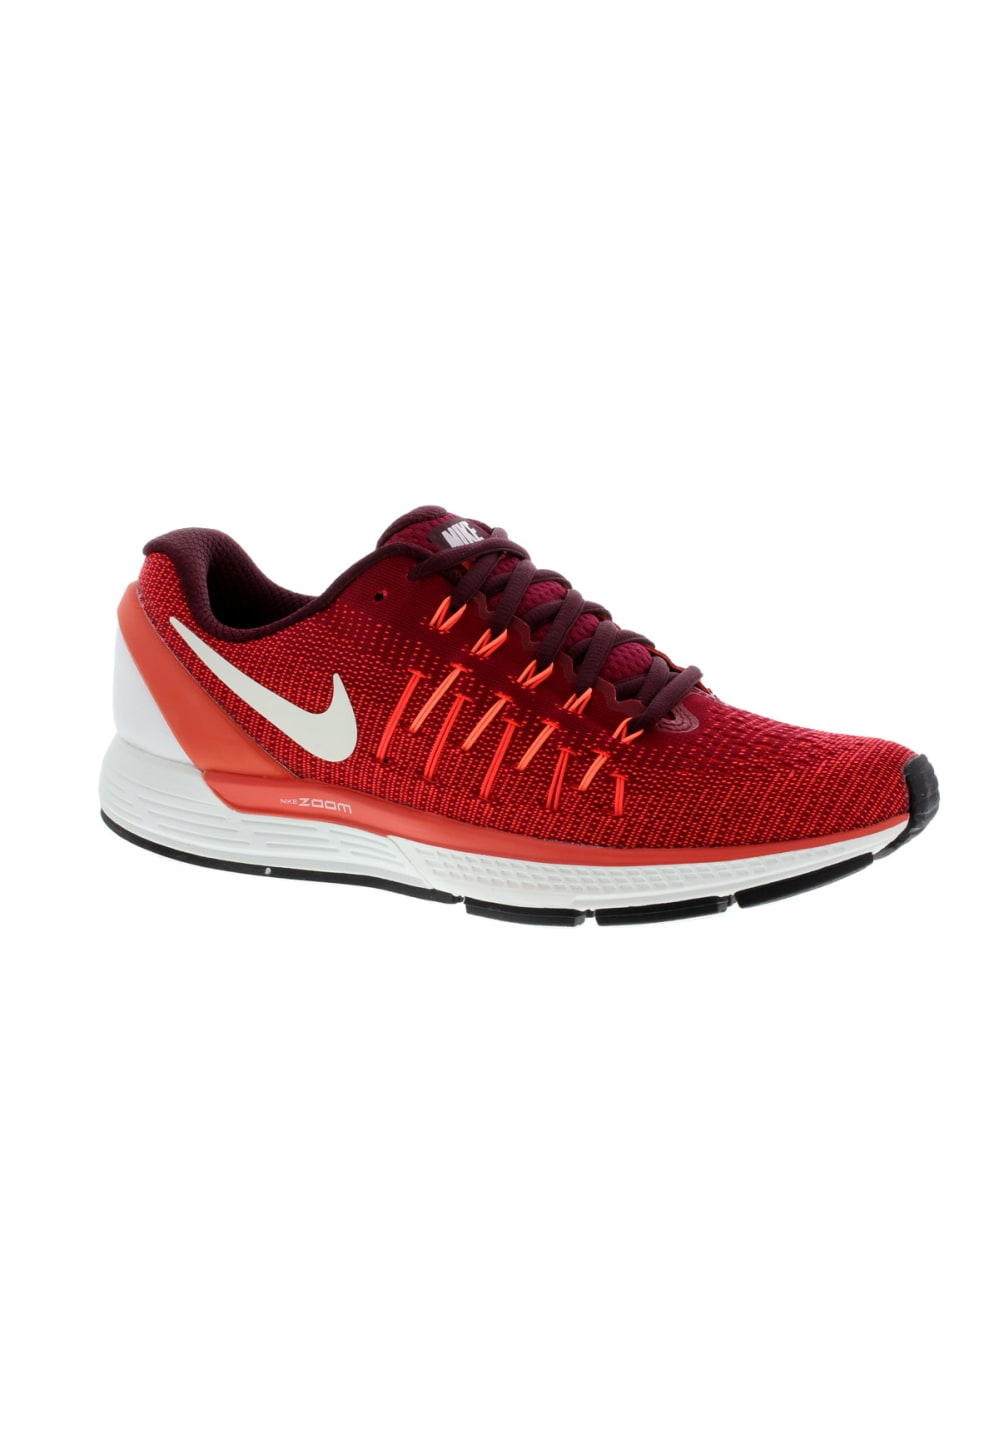 nouveau concept f965c b1a66 Nike Air Zoom Odyssey 2 - Chaussures running pour Femme - Rouge